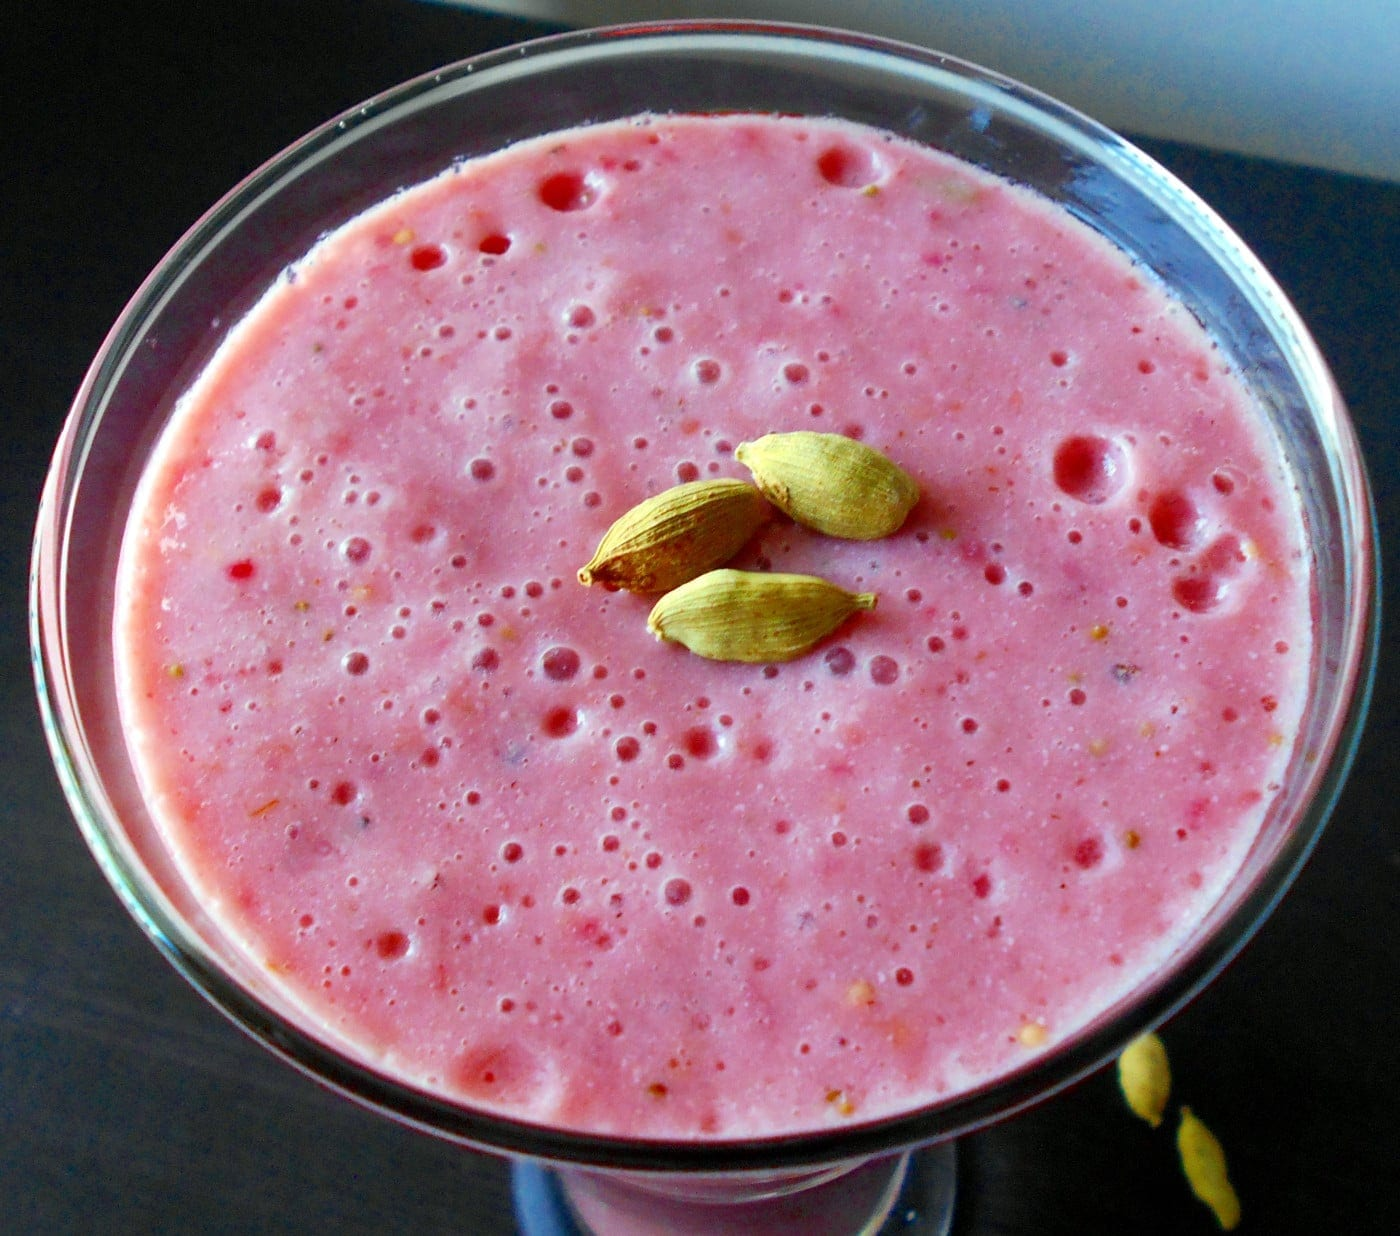 Closeup view of the top of the glass filled with  Tomatillo Strawberry Smoothie